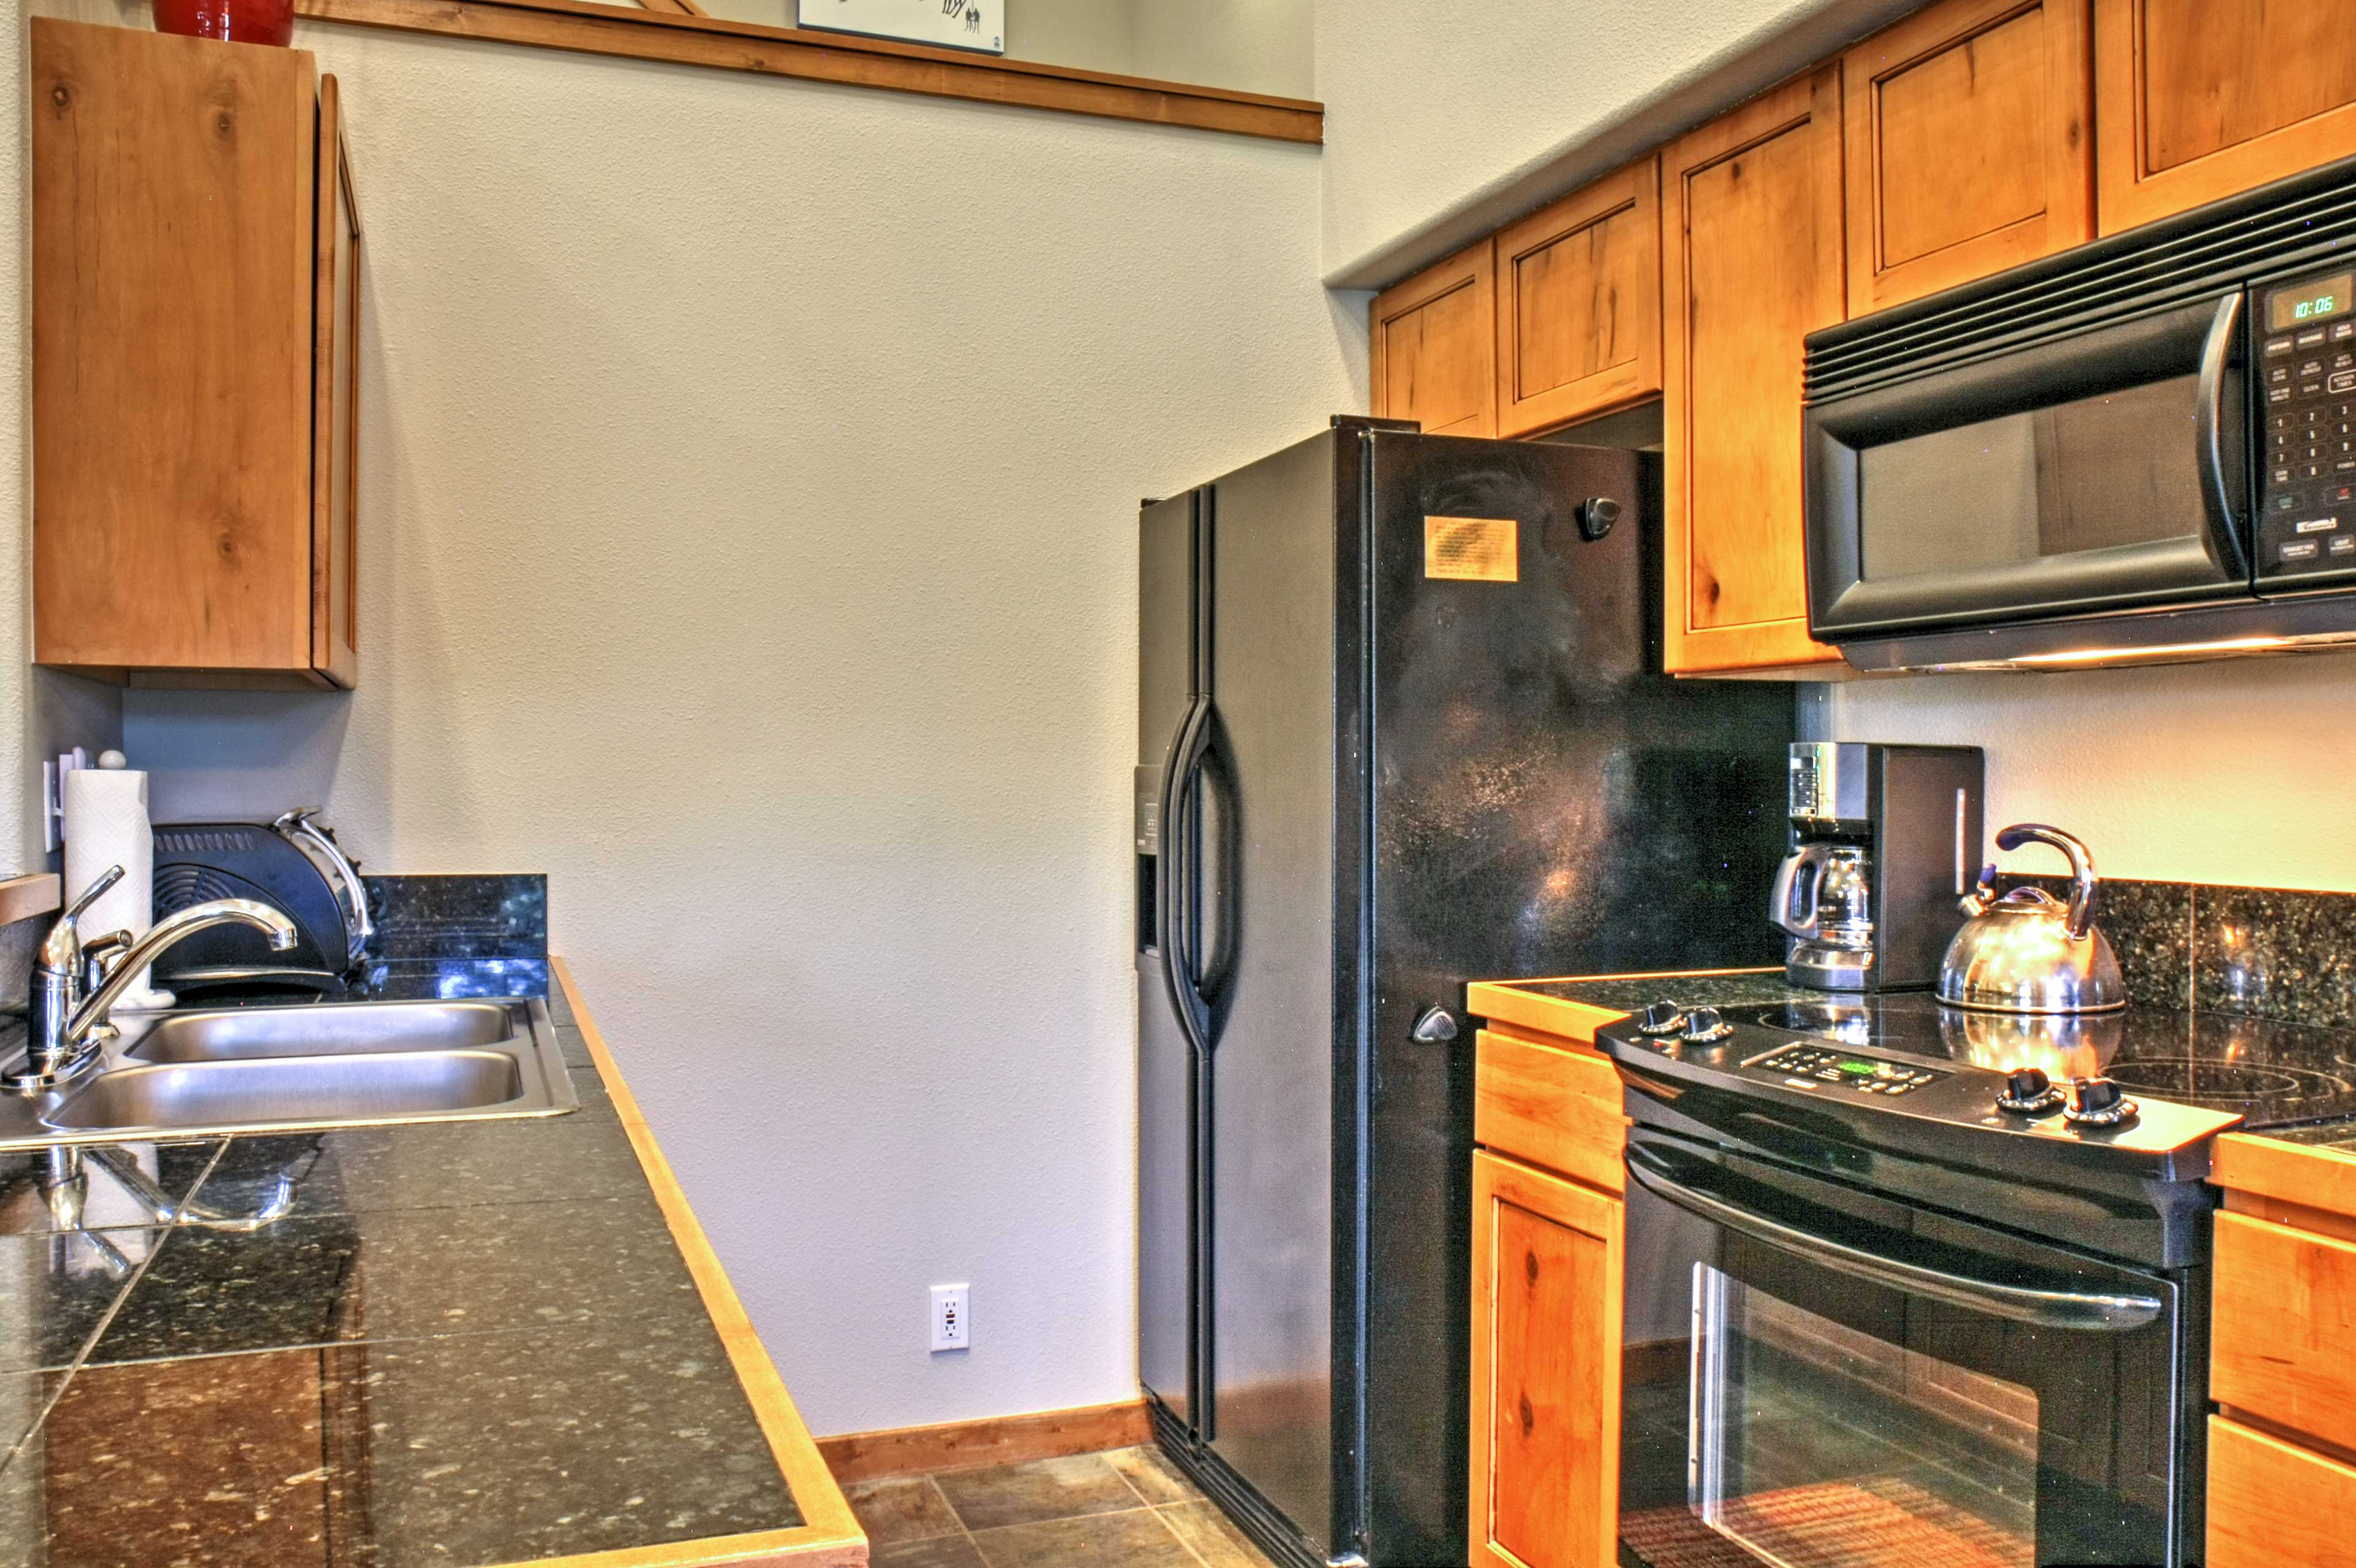 Whip up home-cooked meals for friends in this sleek, fully equipped kitchen.